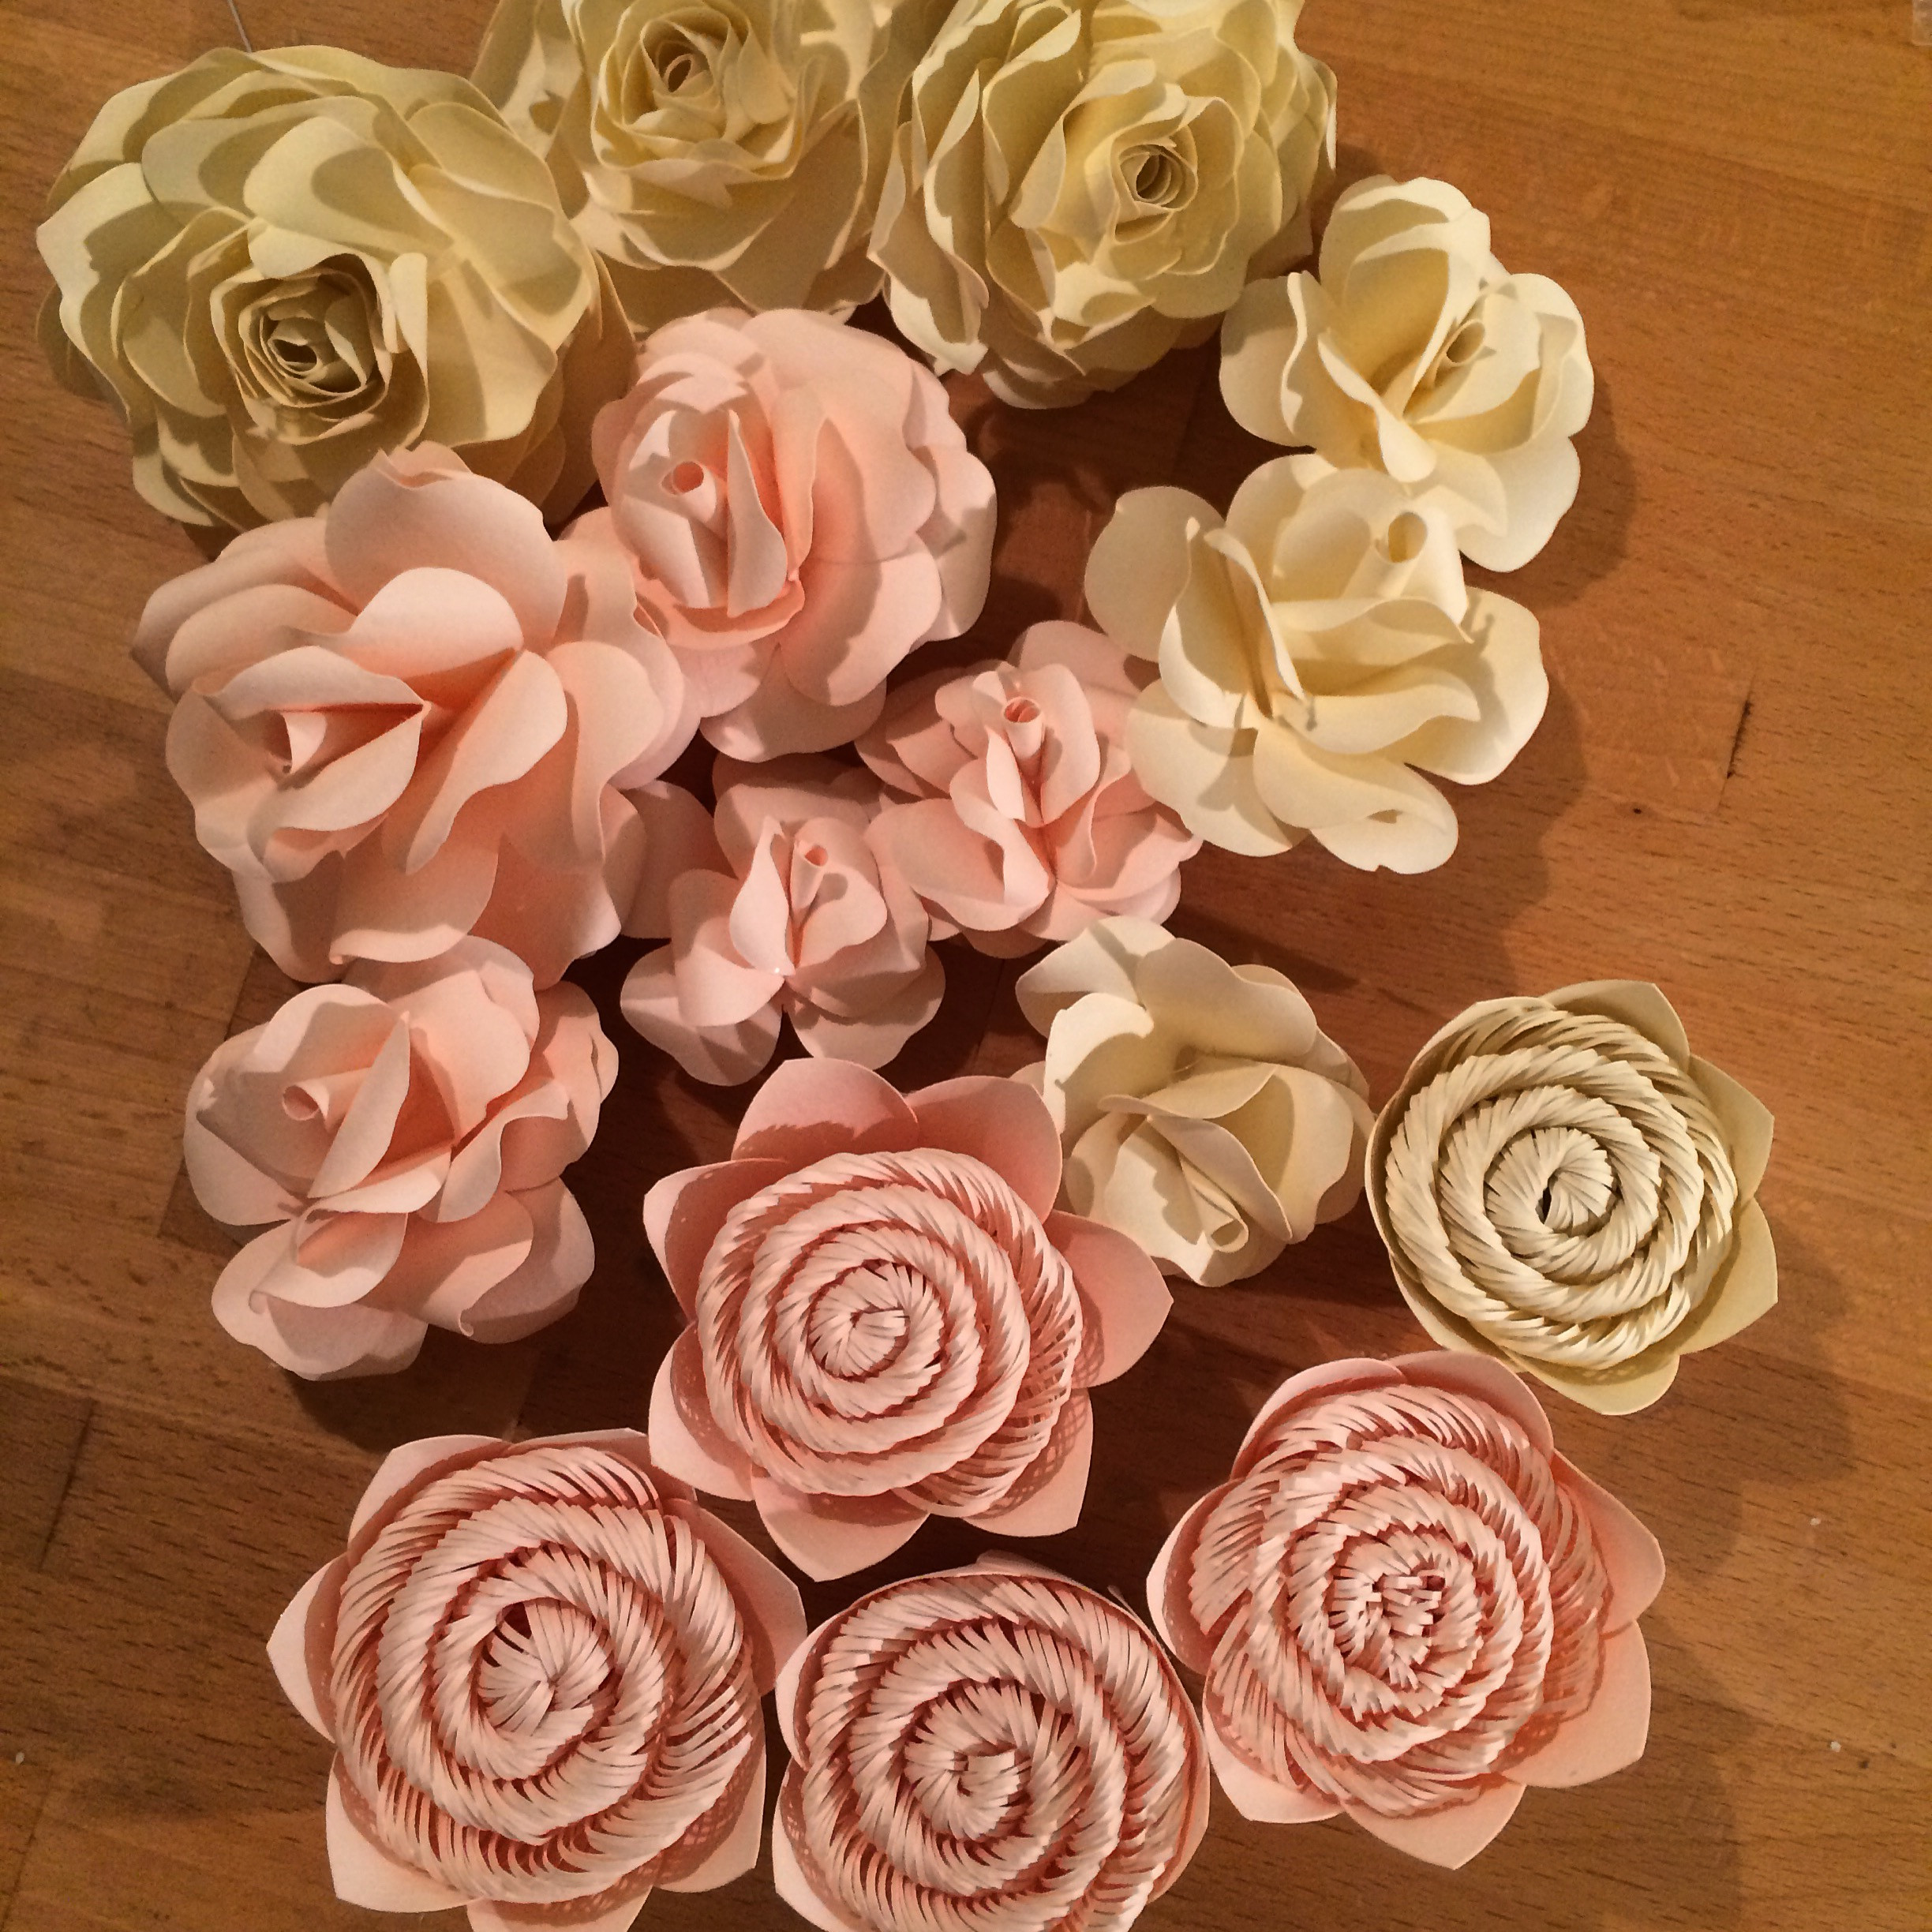 au rose peony listing flower crepe il set decor fullxfull paper wall zoom piece gallery and